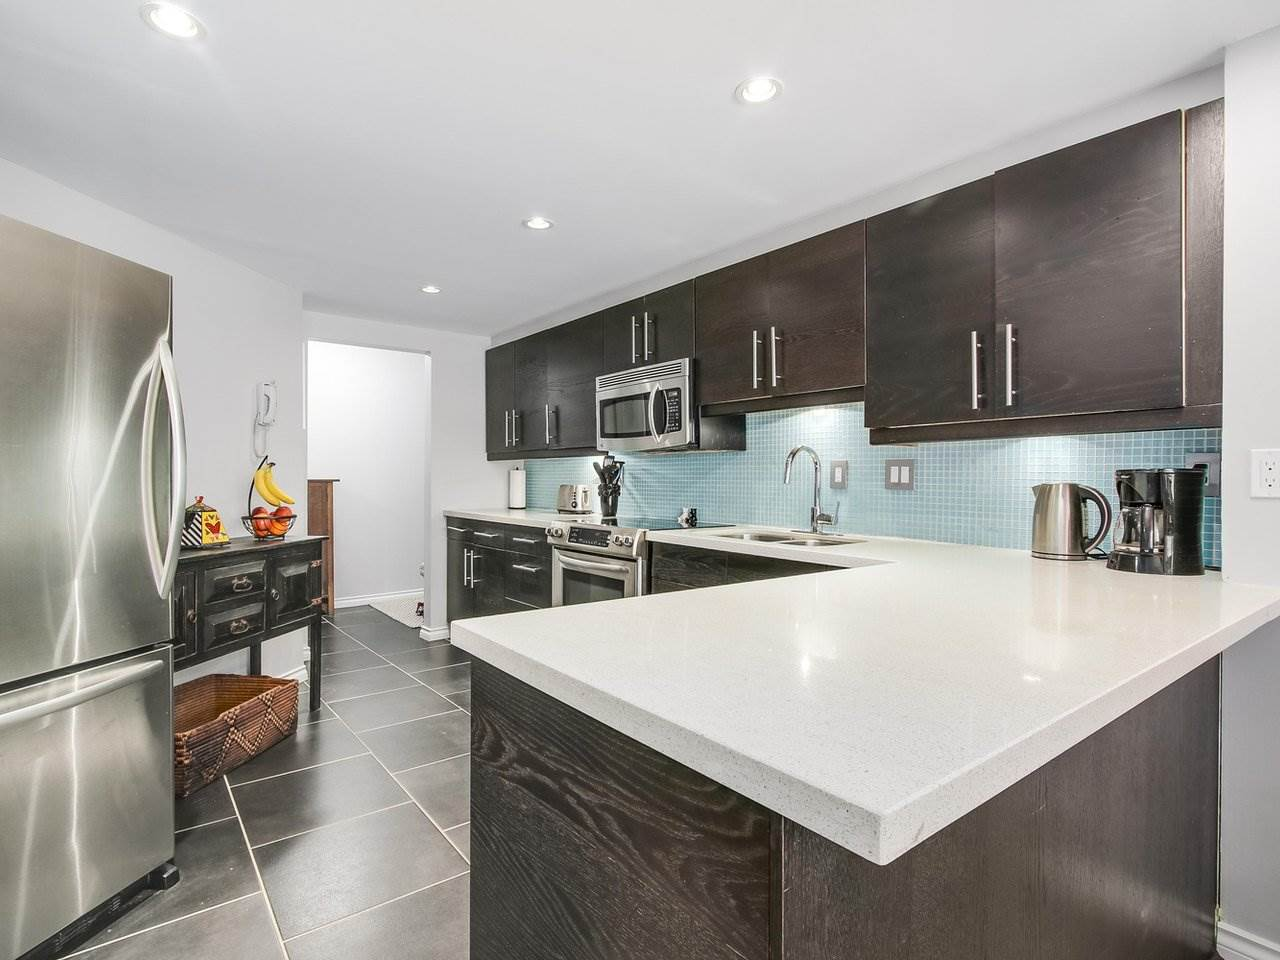 Condo Apartment at 206 1235 QUAYSIDE DRIVE, Unit 206, New Westminster, British Columbia. Image 1